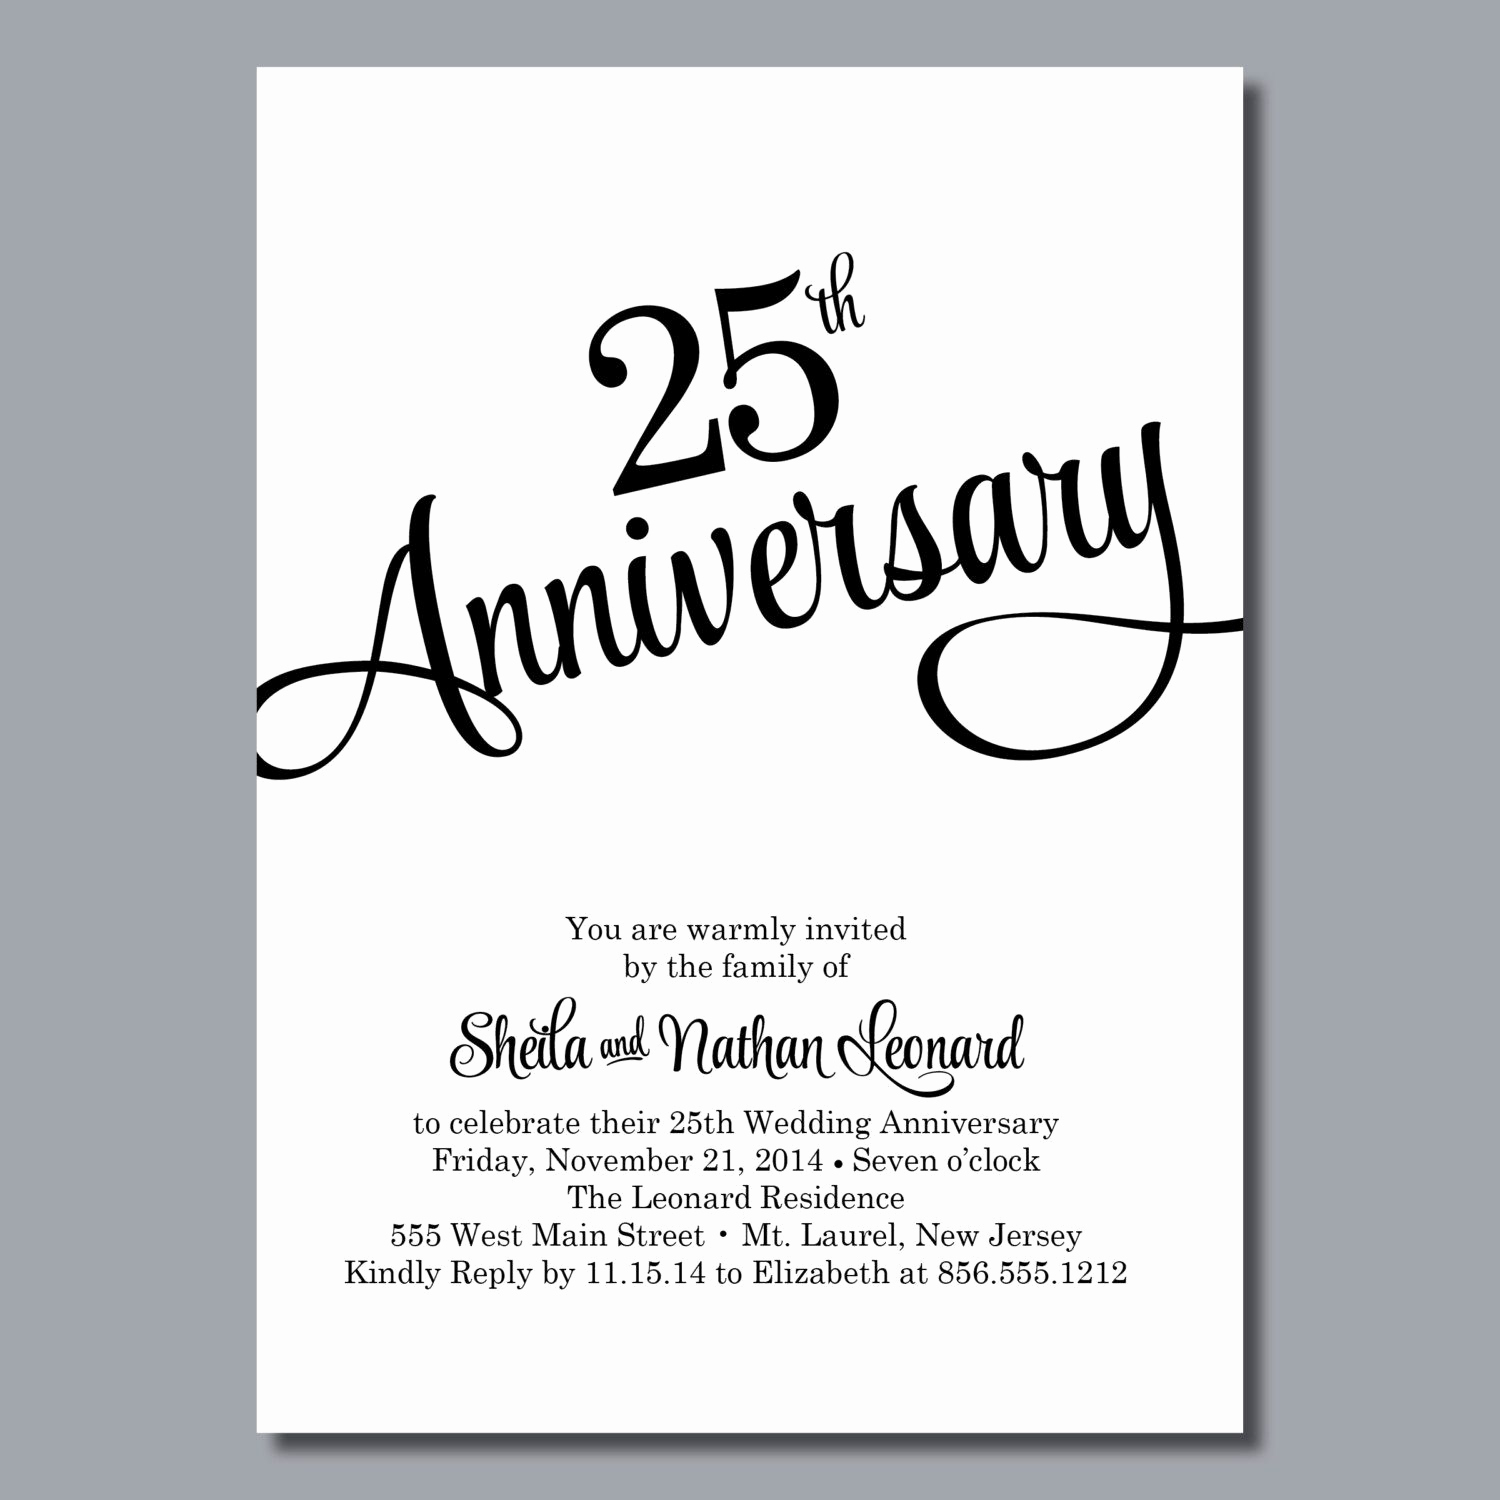 25th Anniversary Invitation Cards Best Of 25th Wedding Anniversary Invites 25th Wedding